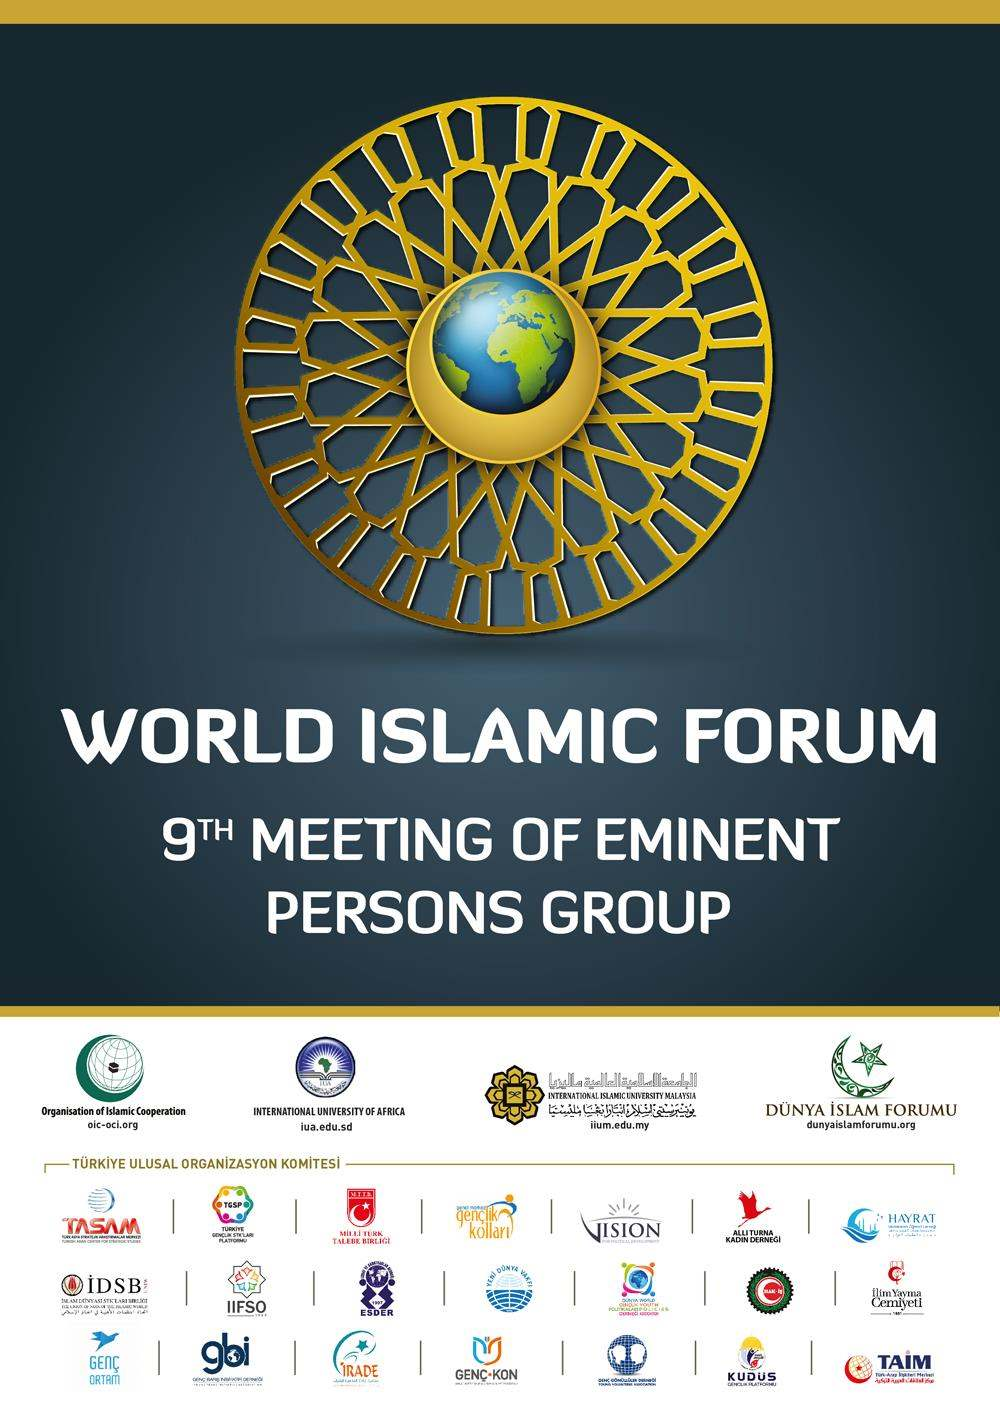 Meeting of Eminent Persons Group of World Islamic Forum - 9